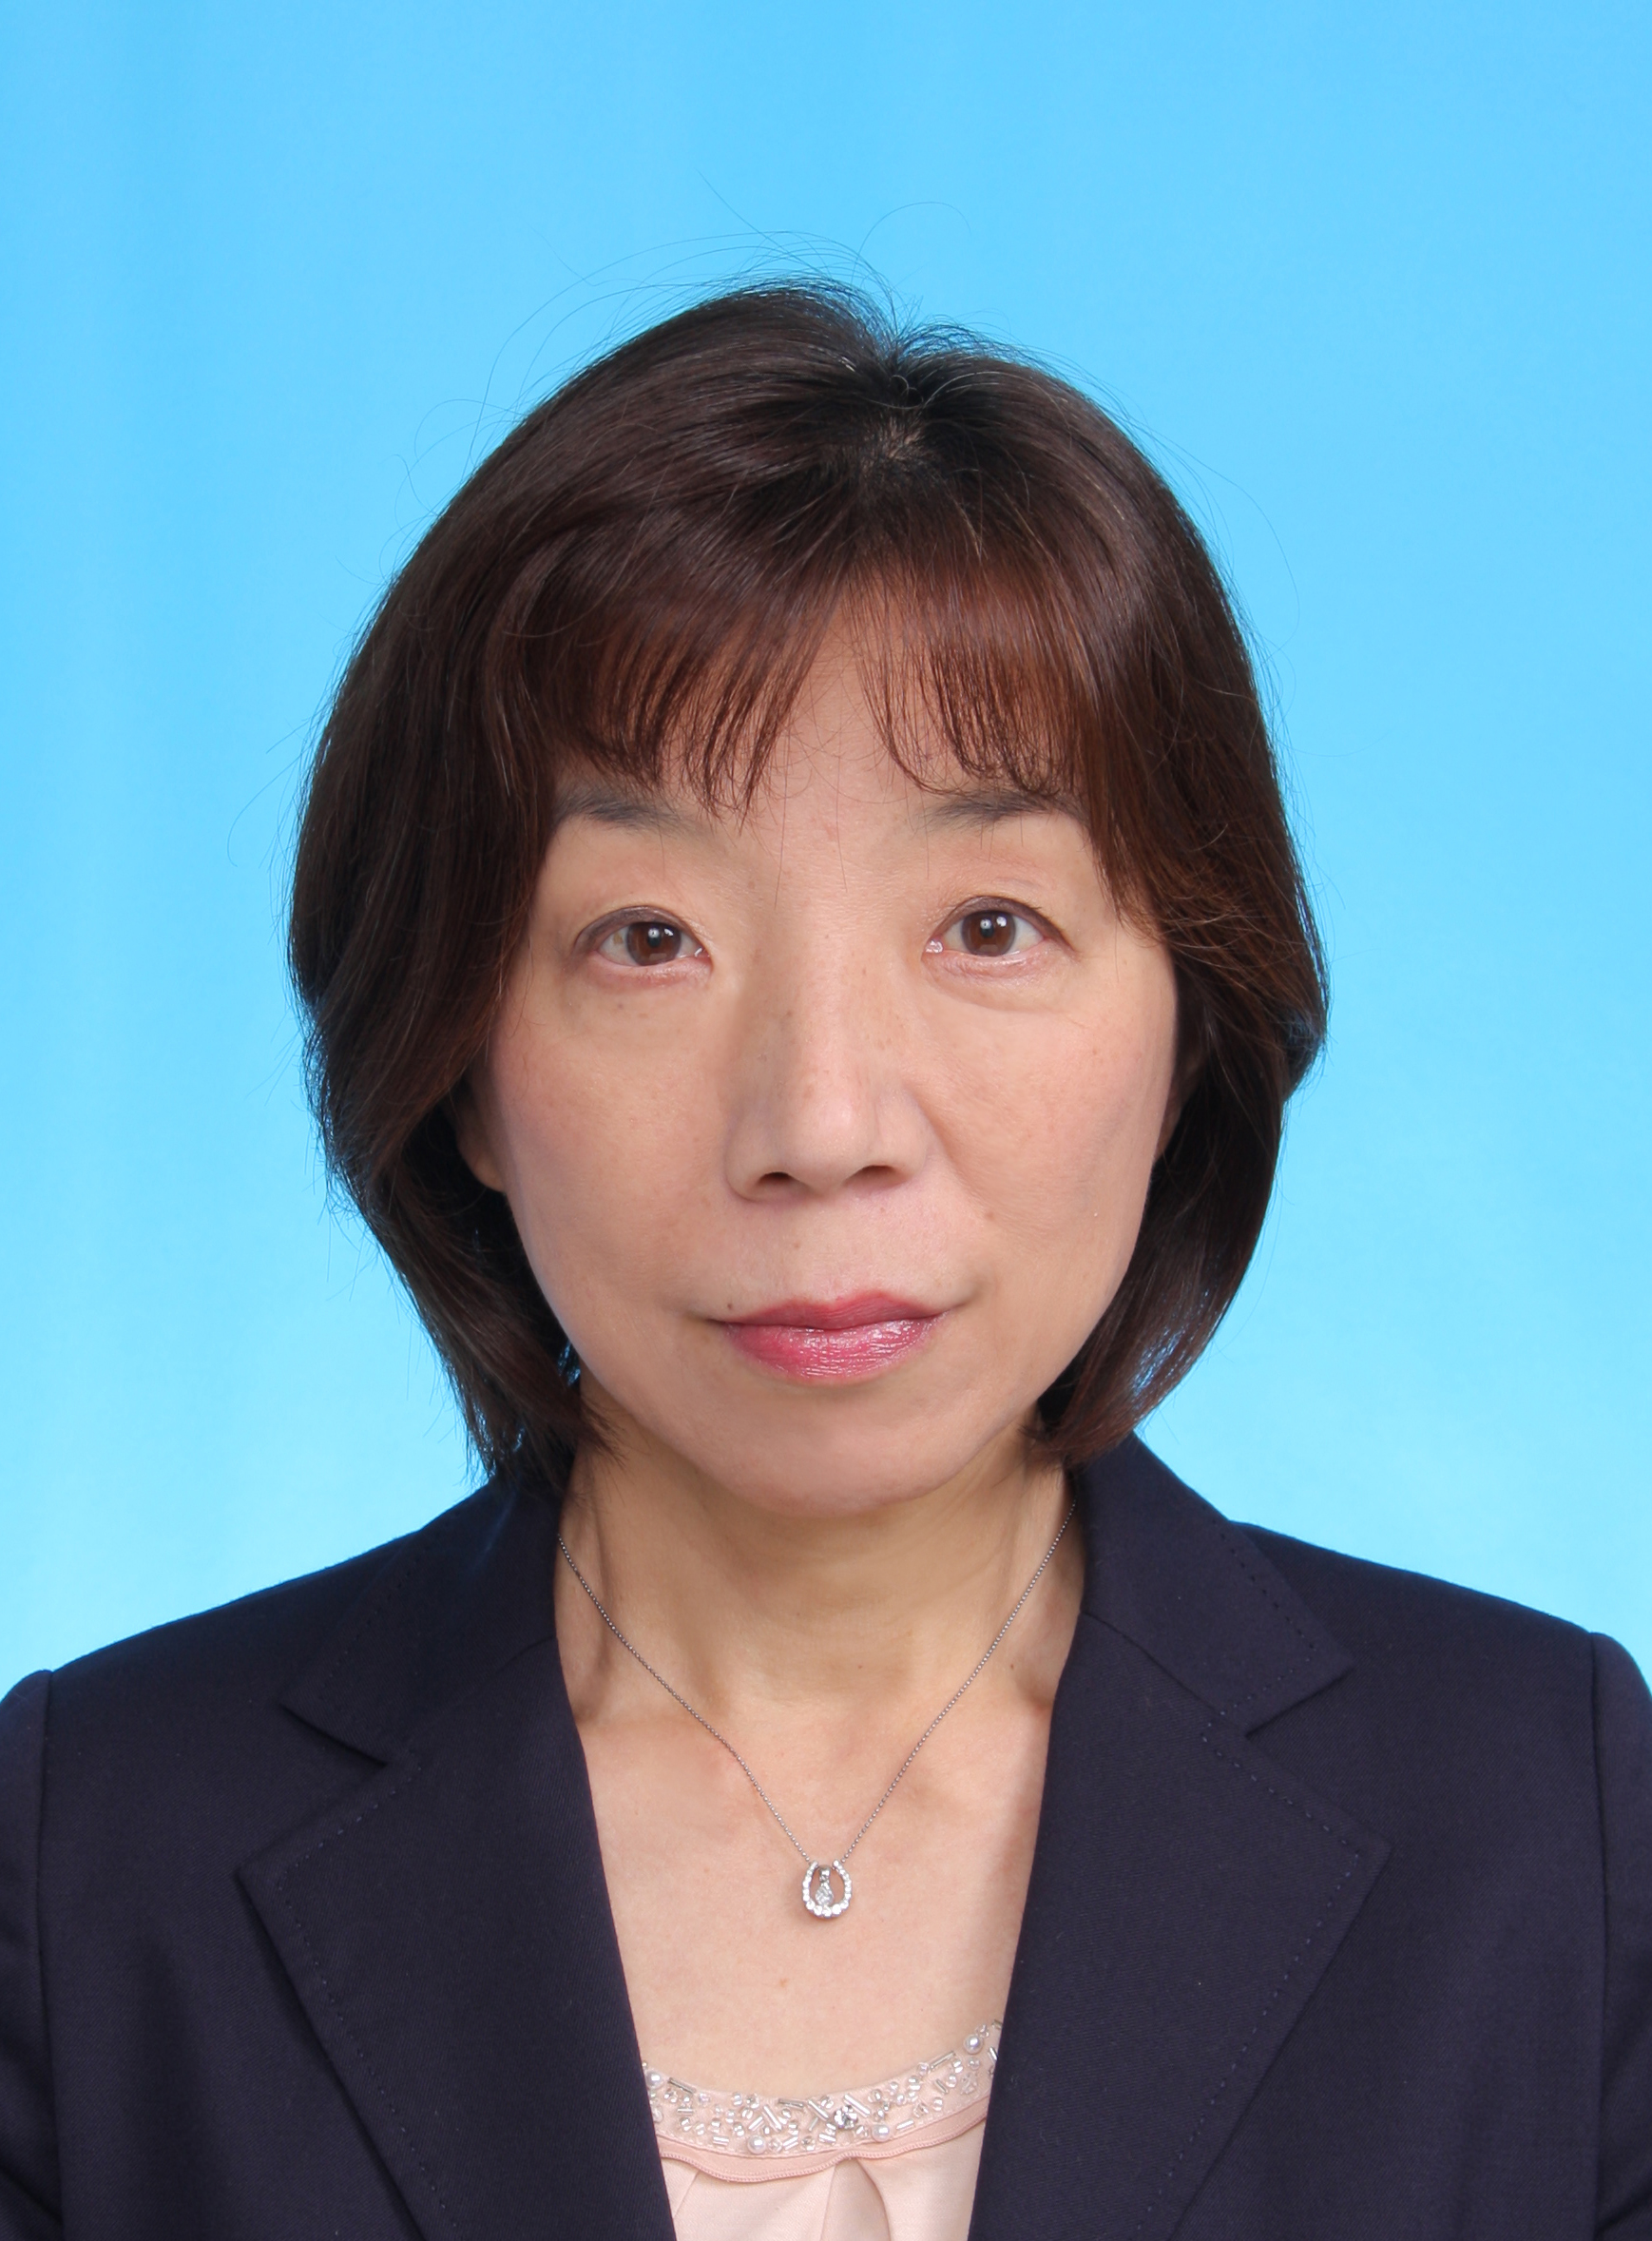 YOSHIDA Aya, Professor at the Faculty of Education and Integrated Arts and Sciences, Waseda University